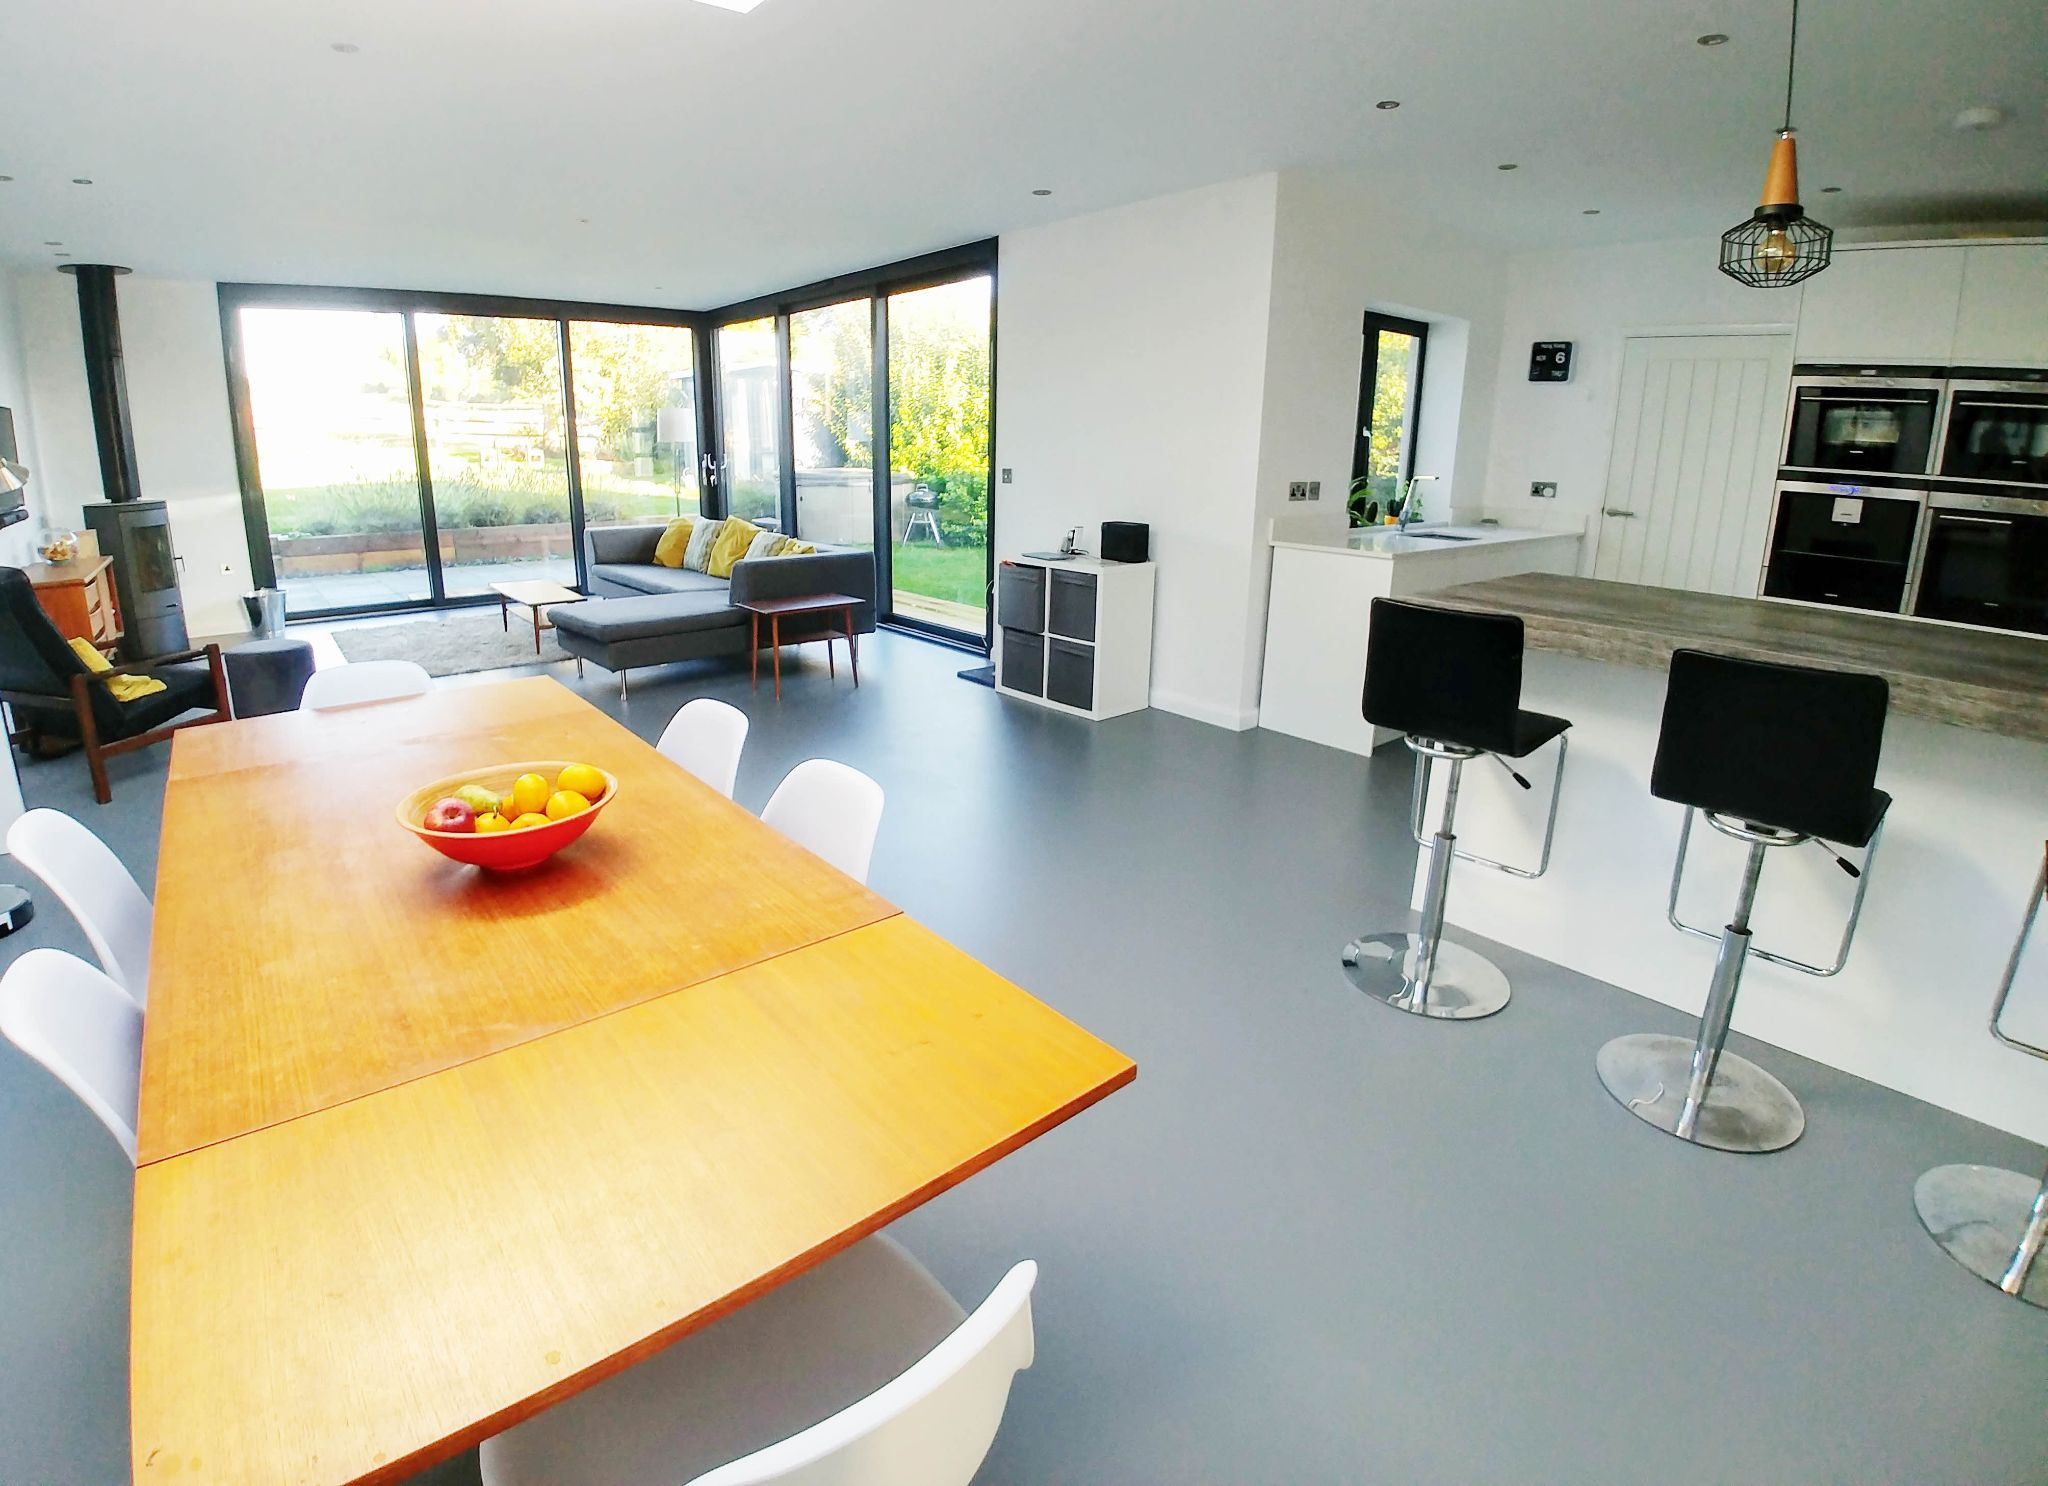 4 Bedroom Detached House For Sale - Open-plan dining area